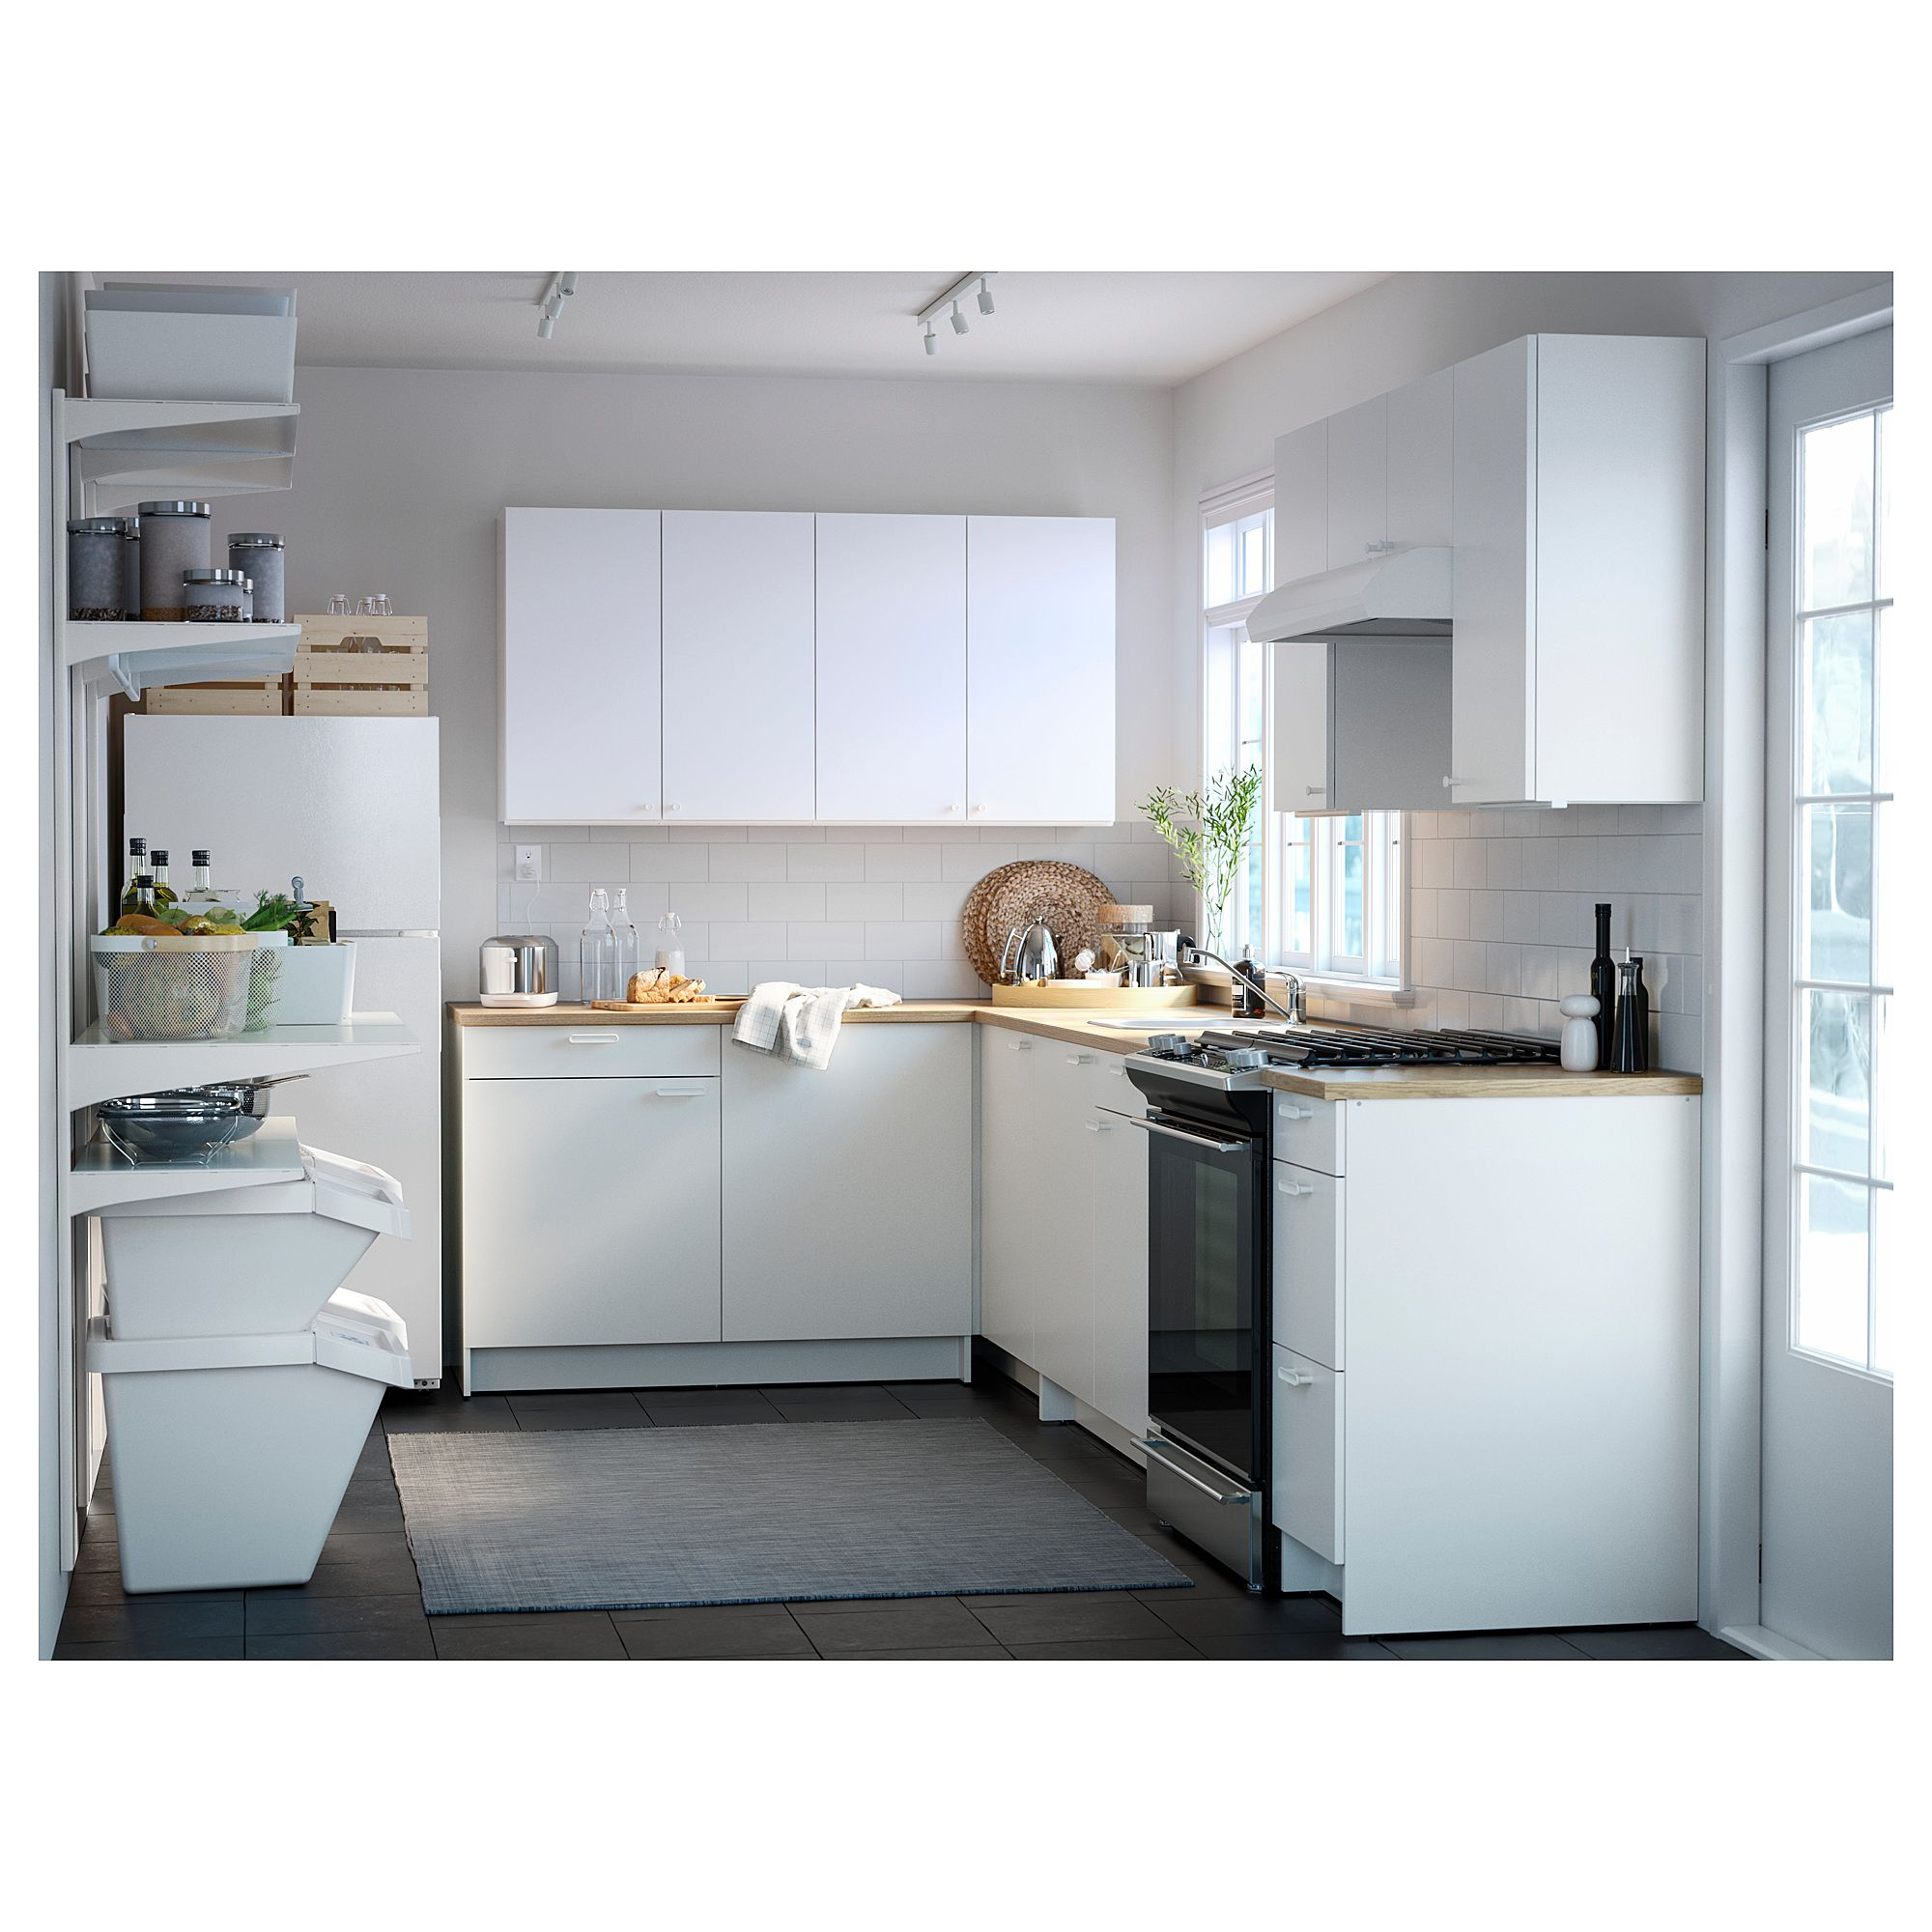 Küche Knoxhult Ikea Ikea Knoxhult Base Cabinet With Doors And Drawer White Kitchen